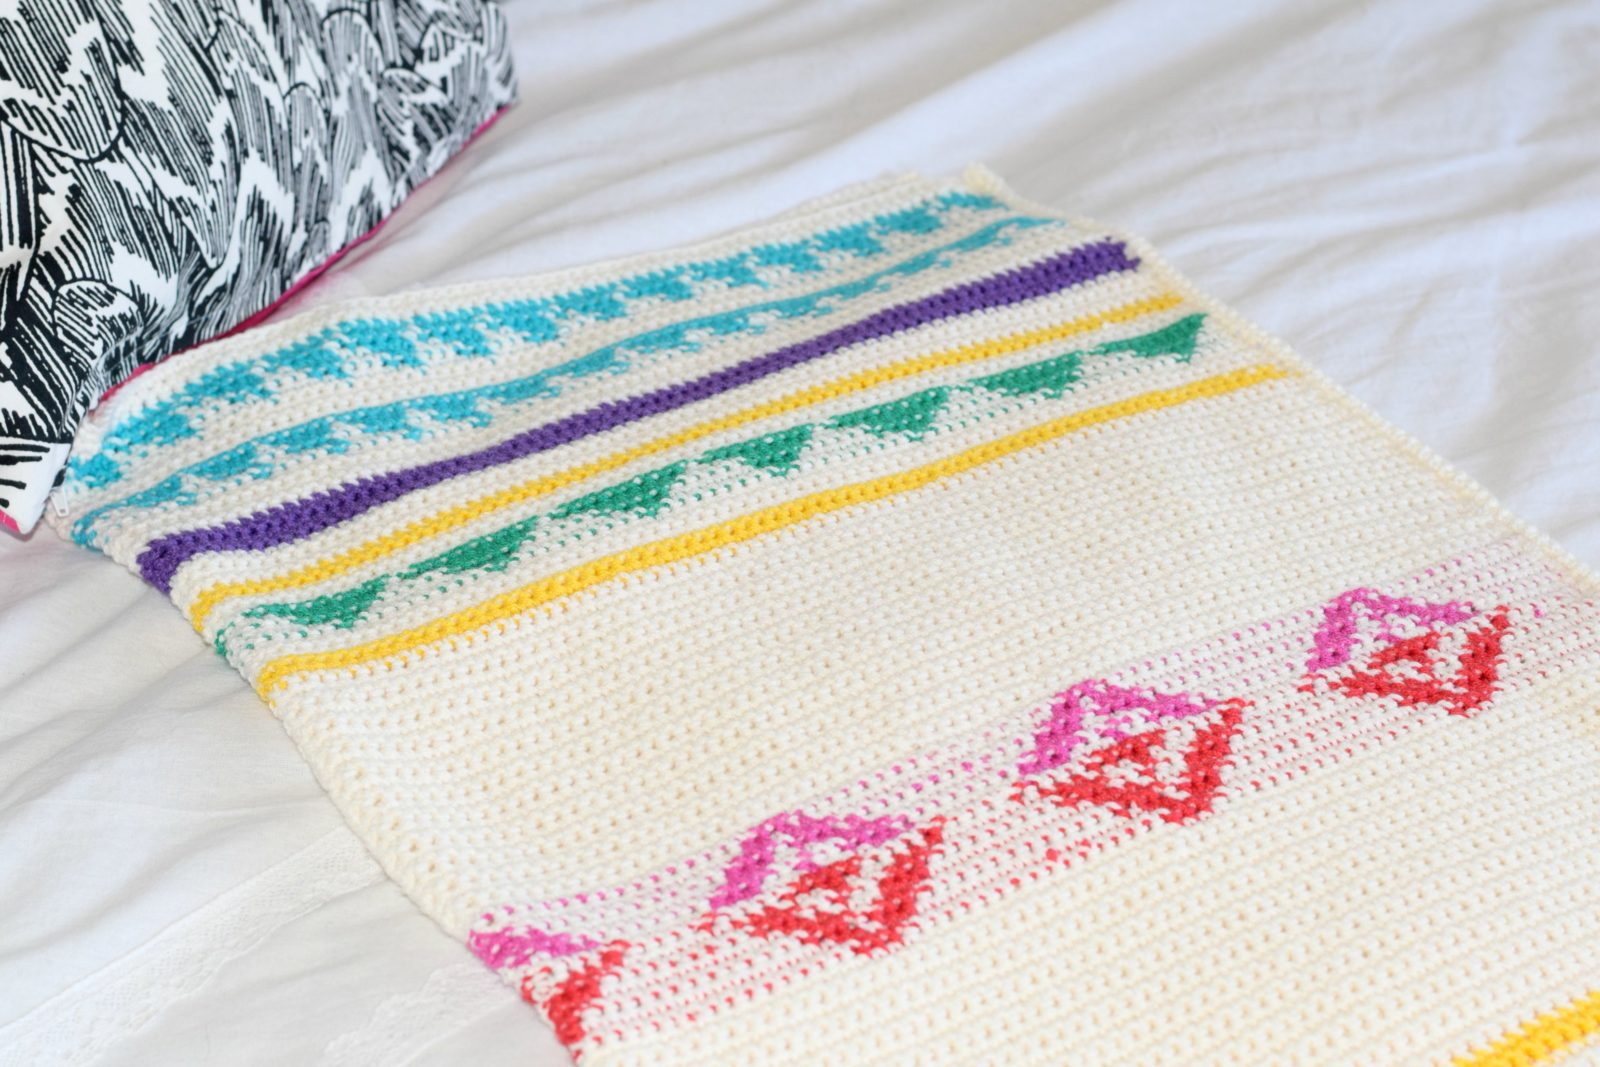 How To Work Tapestry Crochet The Easy Way Mama In A Stitch Round Ripple Afghan Pattern With Diagram Campy